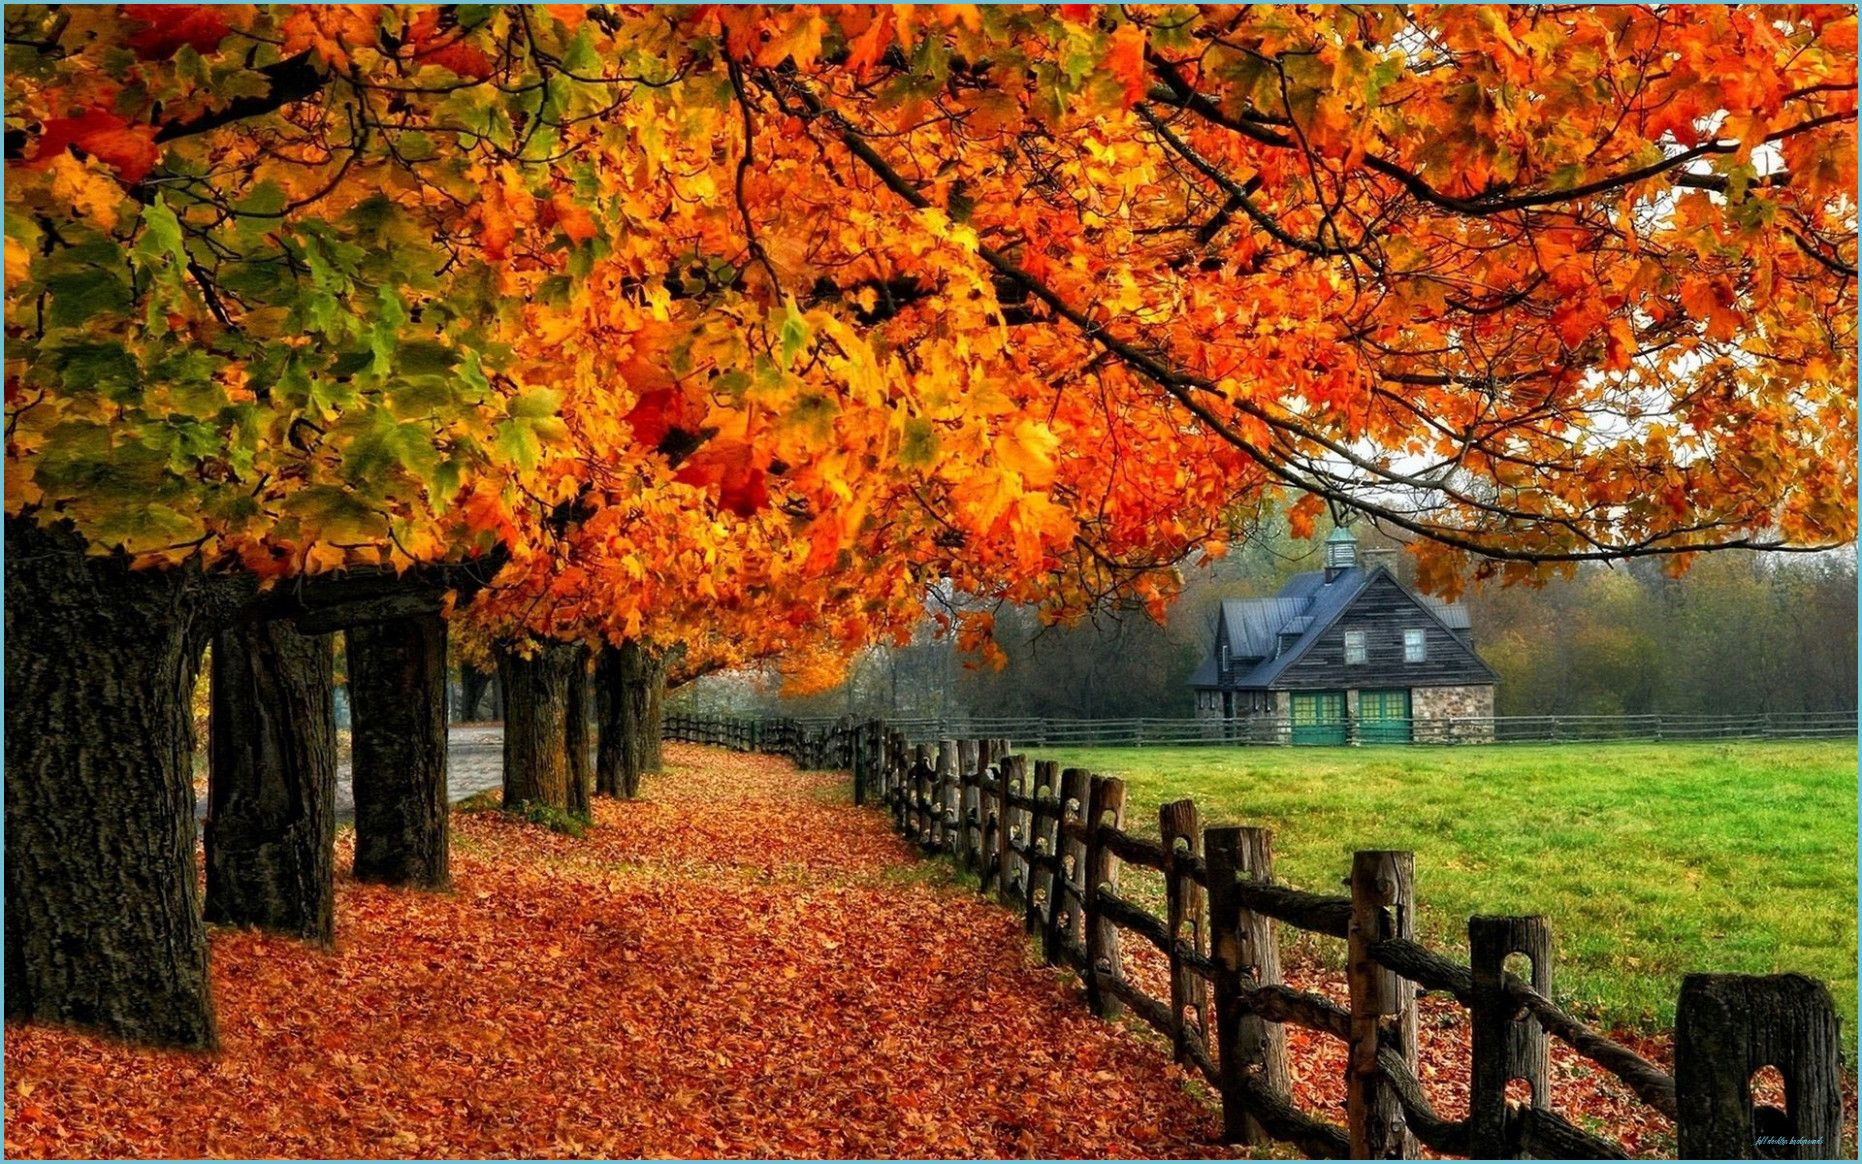 Autumn Wallpapers Examples for Your Desktop Backgrounds